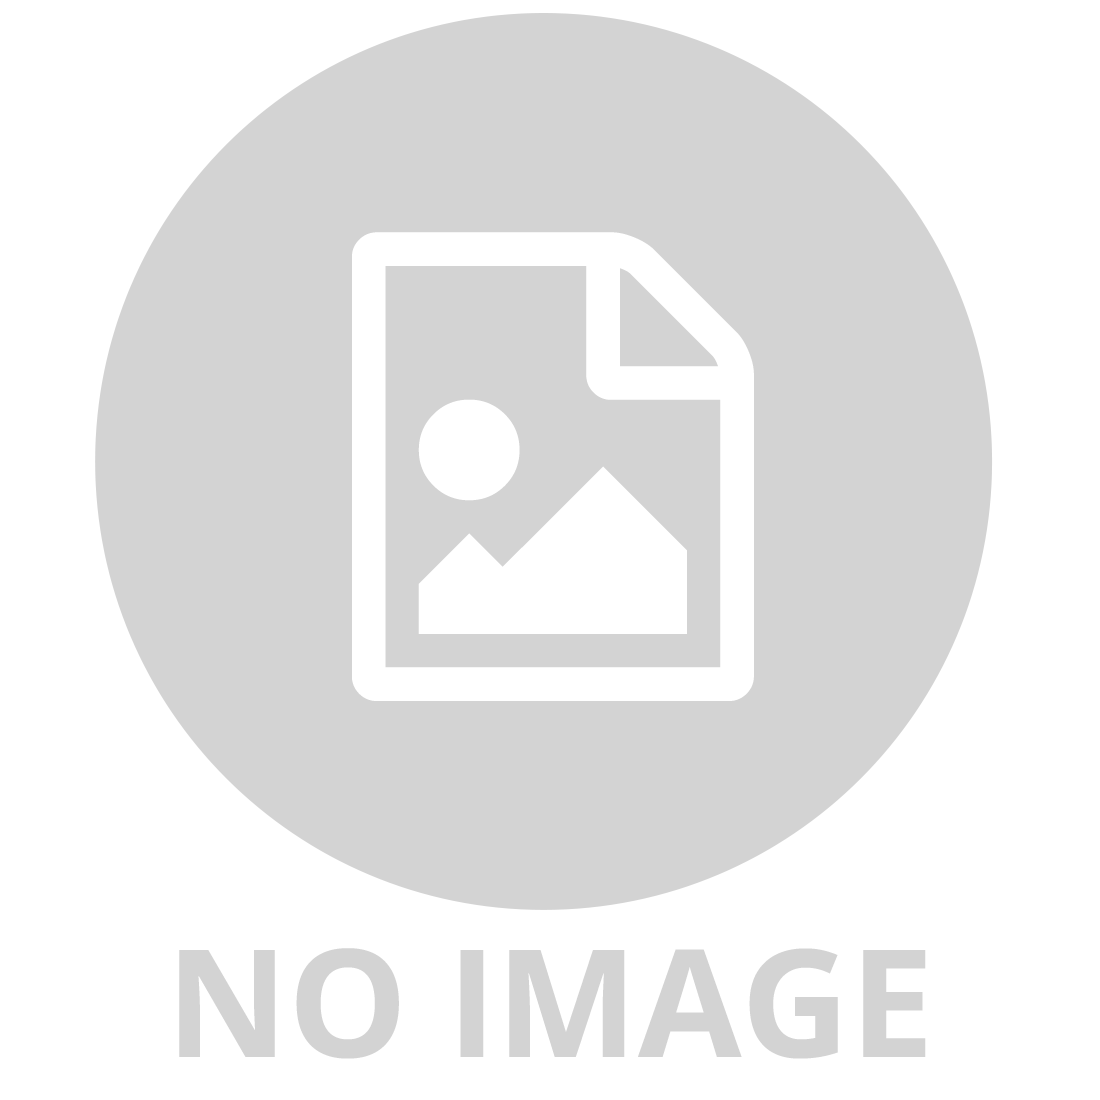 OLD DOGS O GAUGE WATER TANK STAND